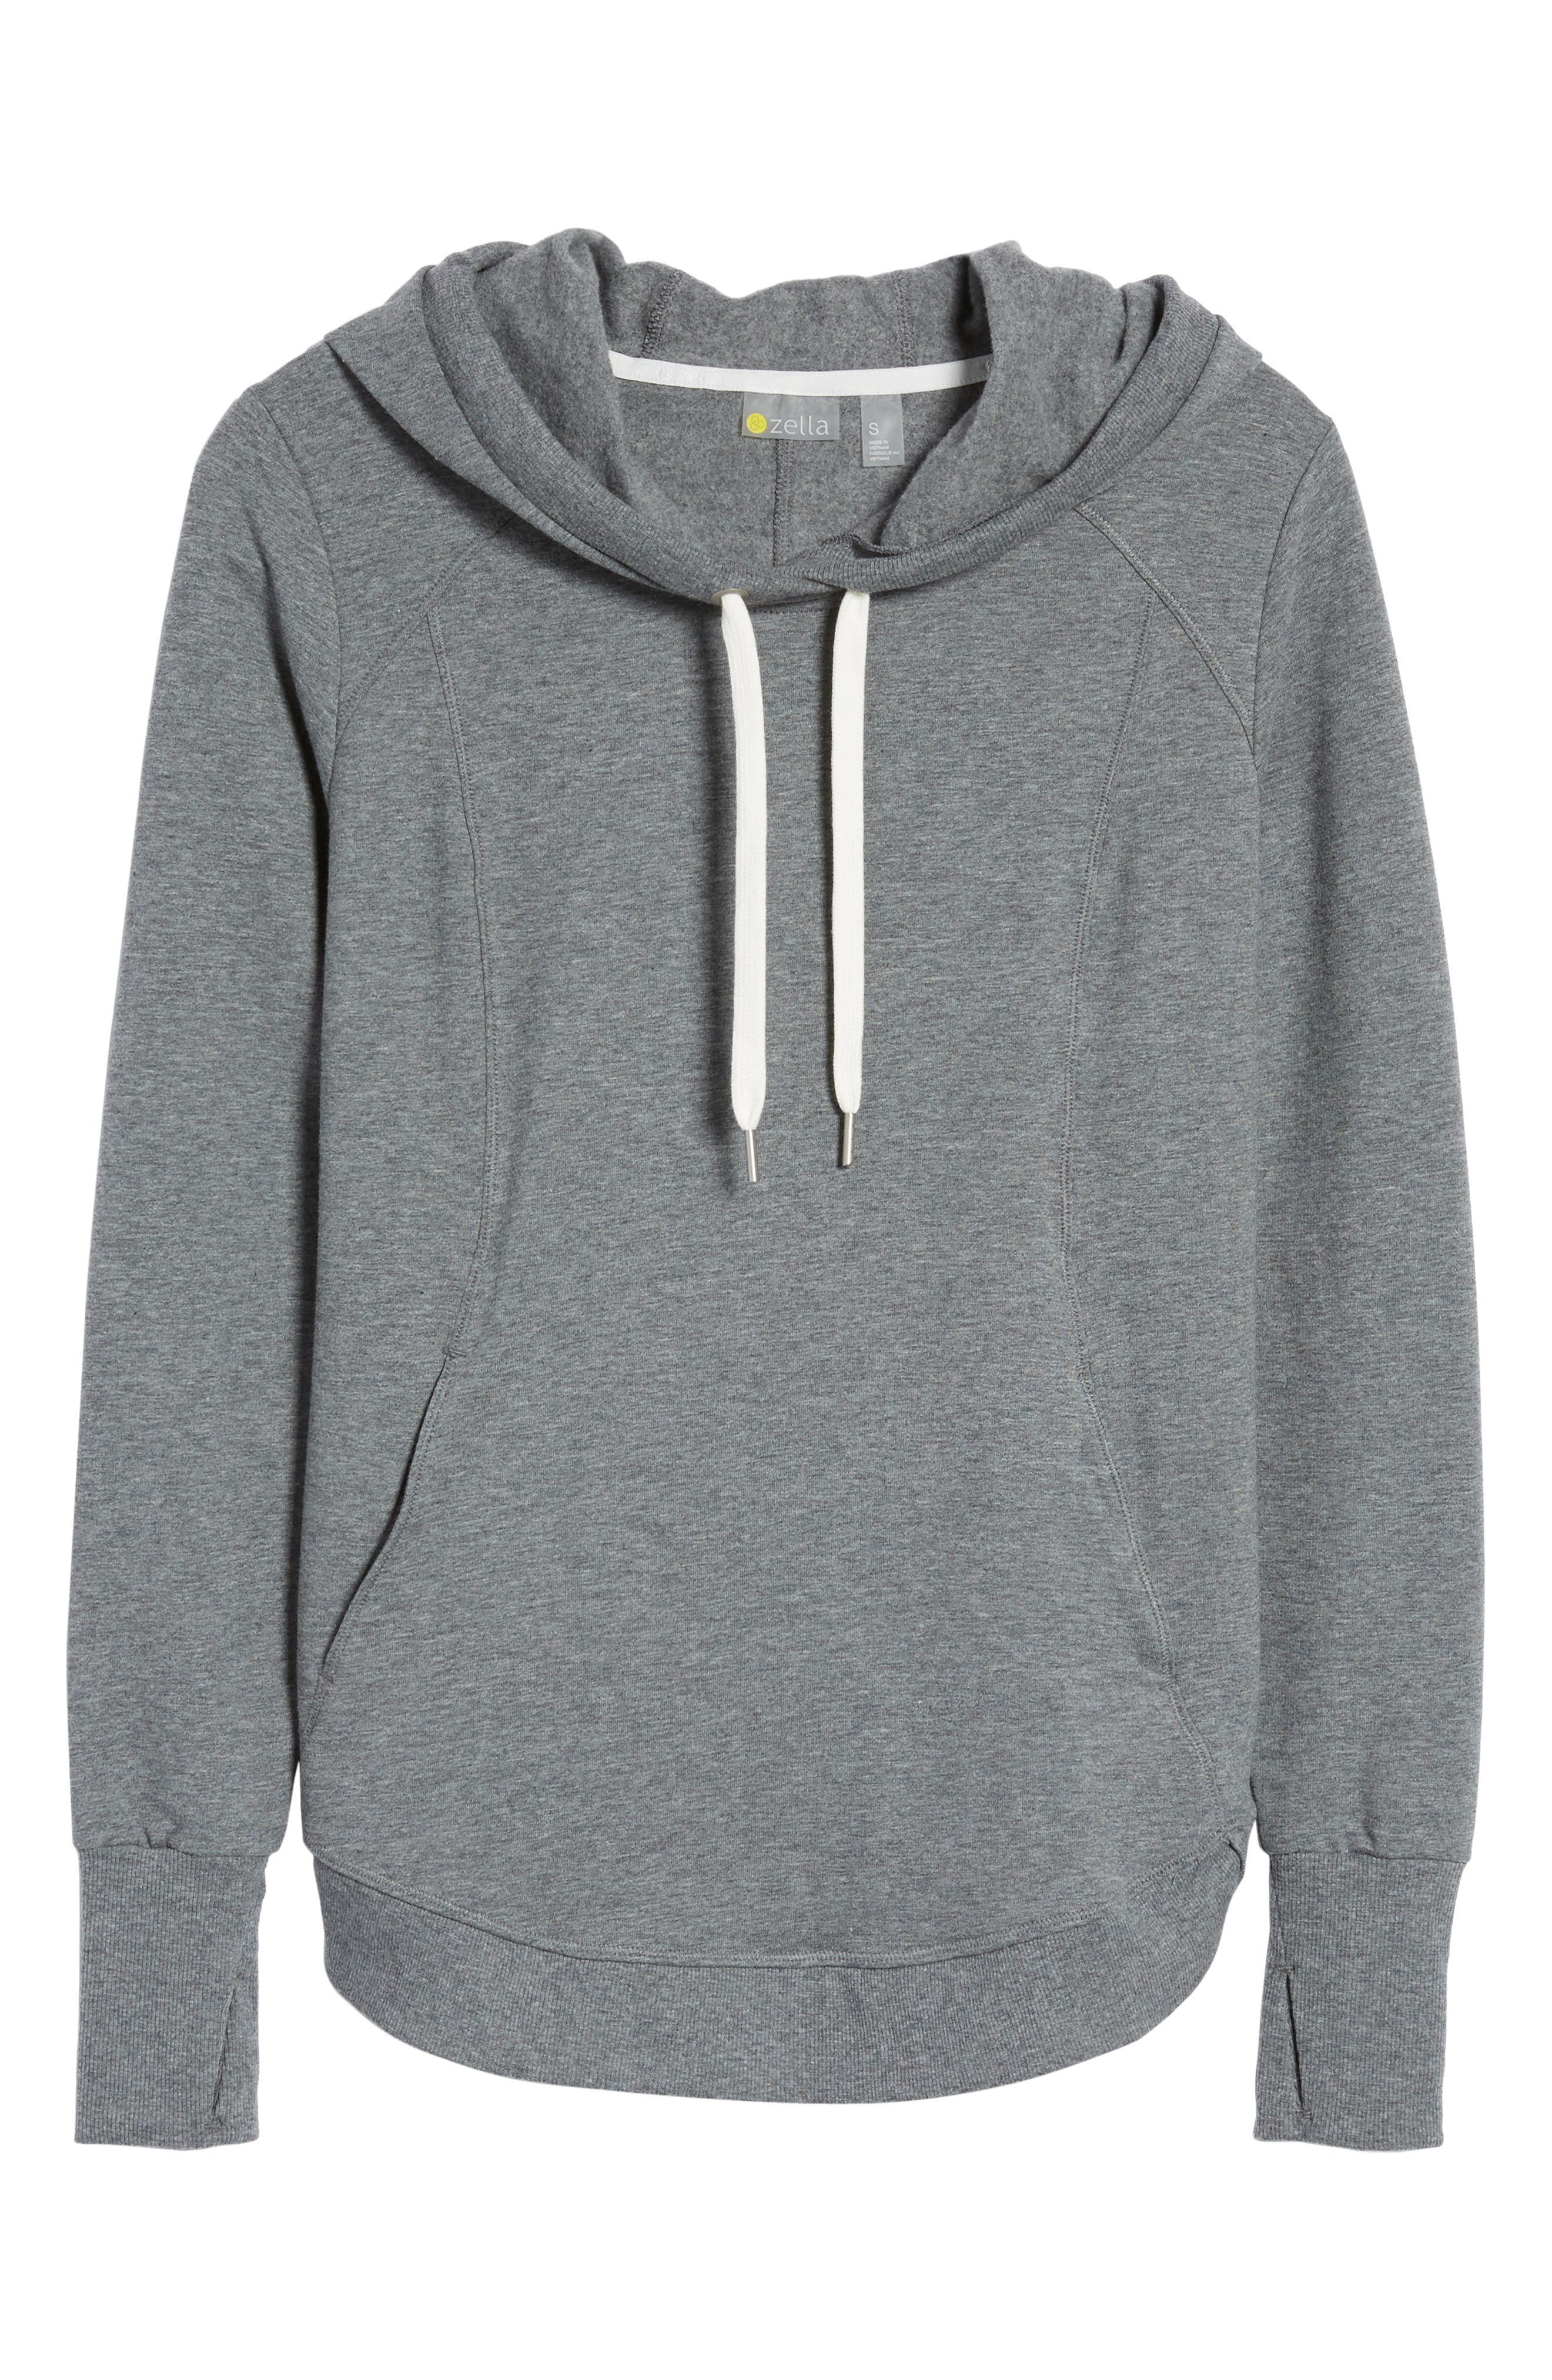 En Route Hoodie,                             Alternate thumbnail 7, color,                             Grey Dark Heather